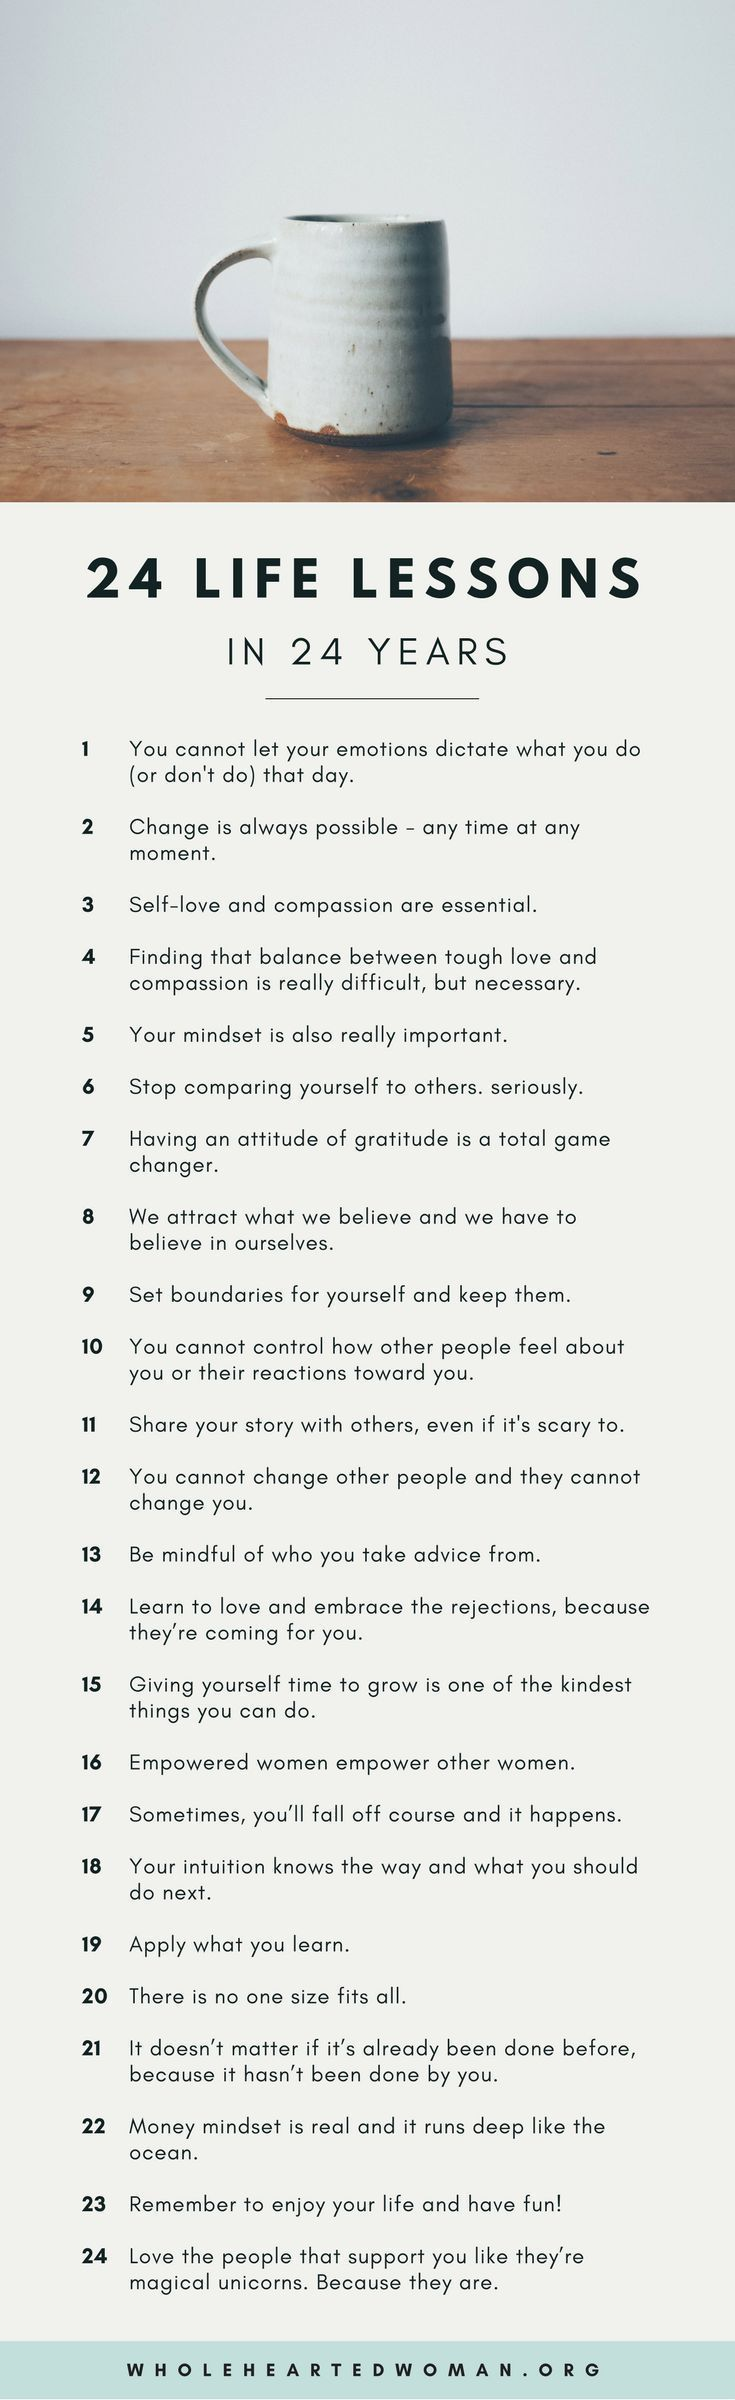 24 Life Lessons in 24 Years   Life Advice   Personal Growth & Development   Mindset